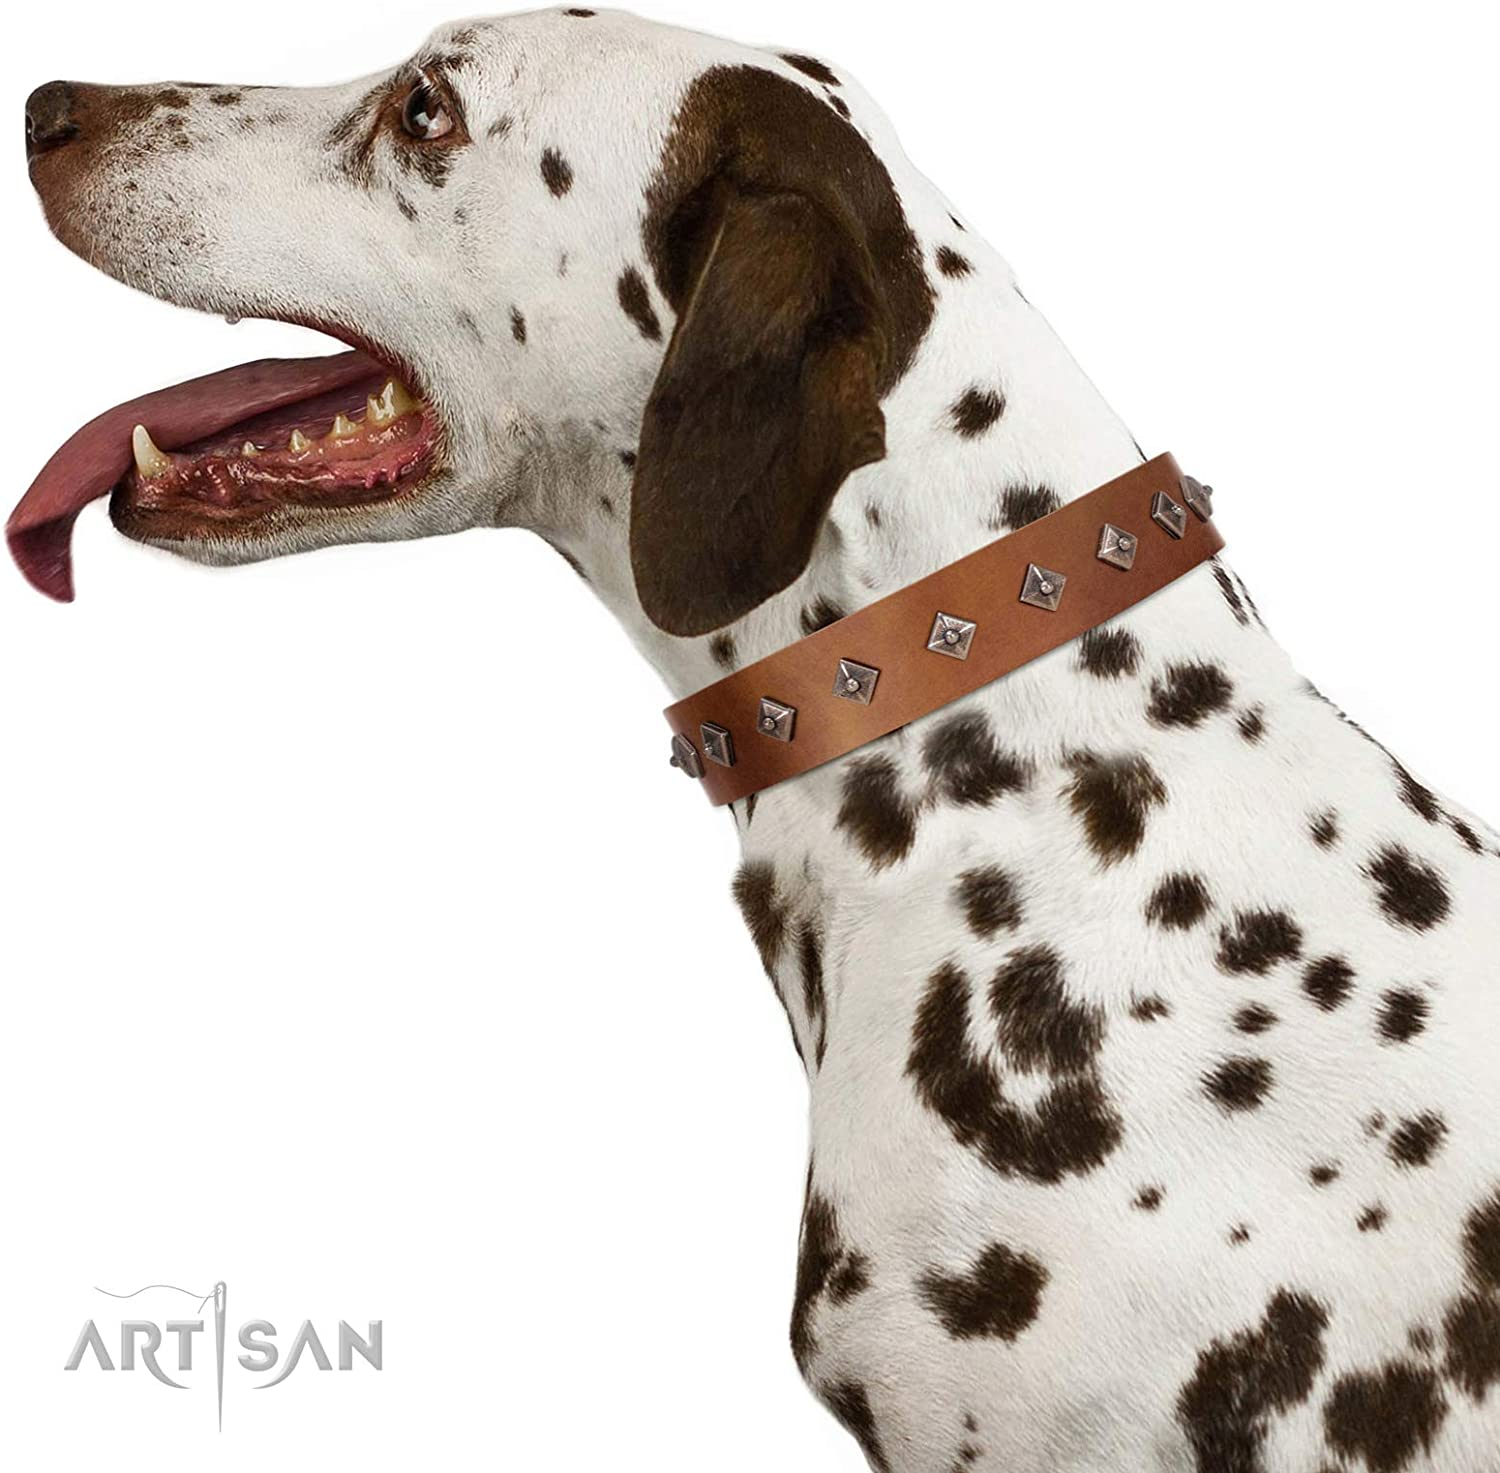 FDT Artisan 17 inch Handmade Tan Leather Dog Collar with Dotted Pyramids  Broadway Box  1 1 2 inch (40 mm) Wide